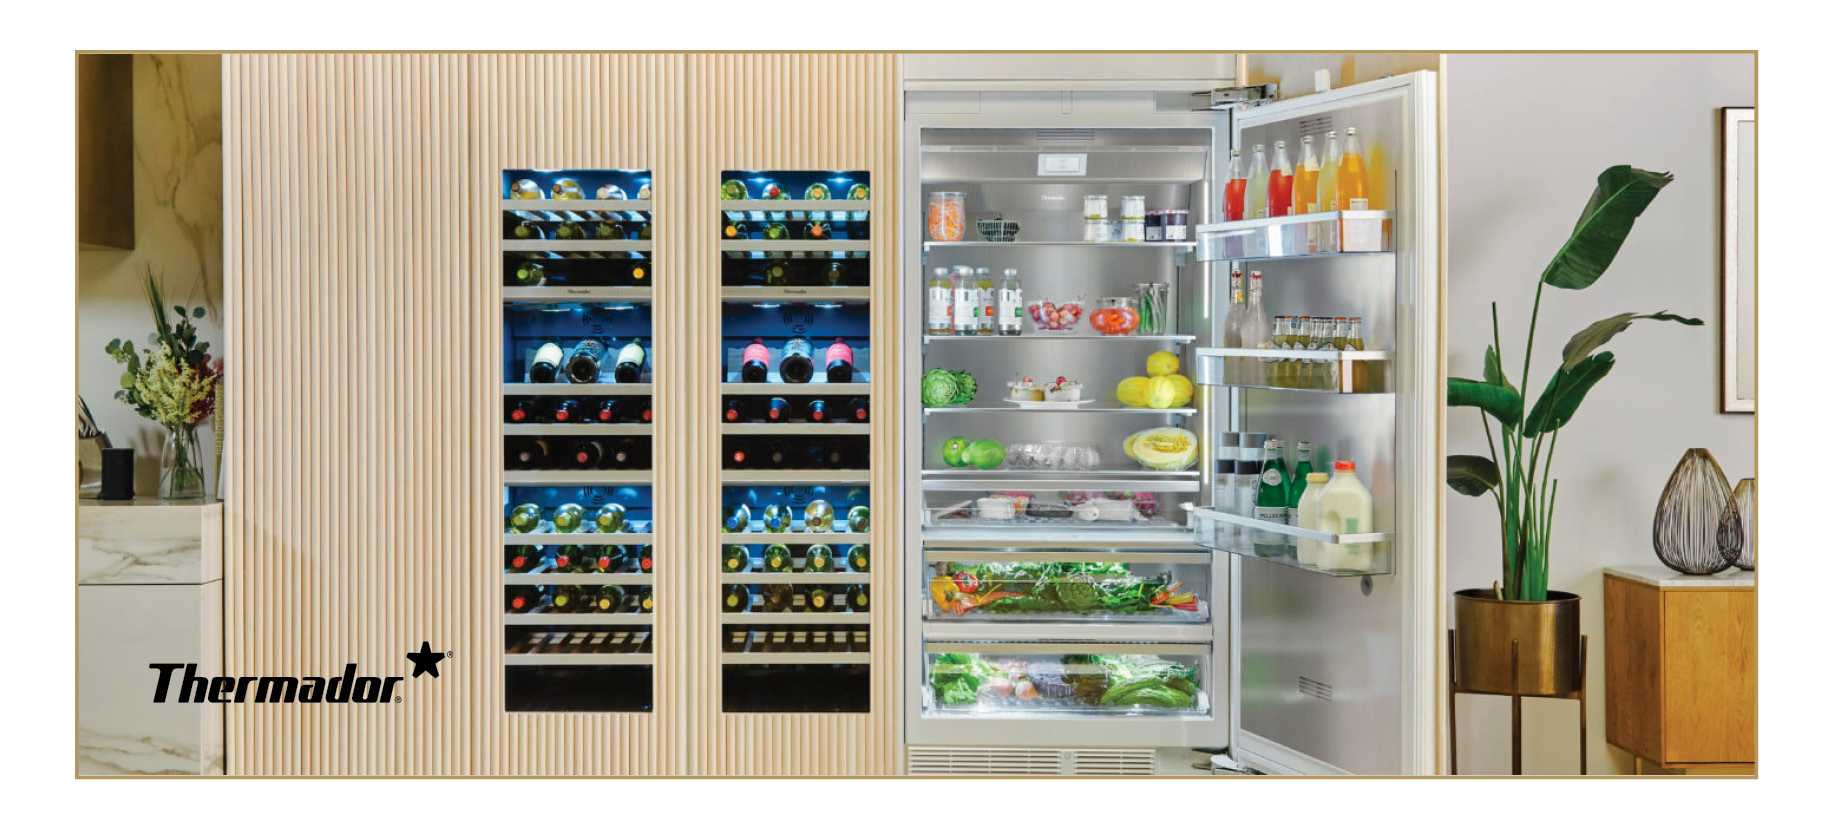 Thermador Freedom Collection Refrigerator